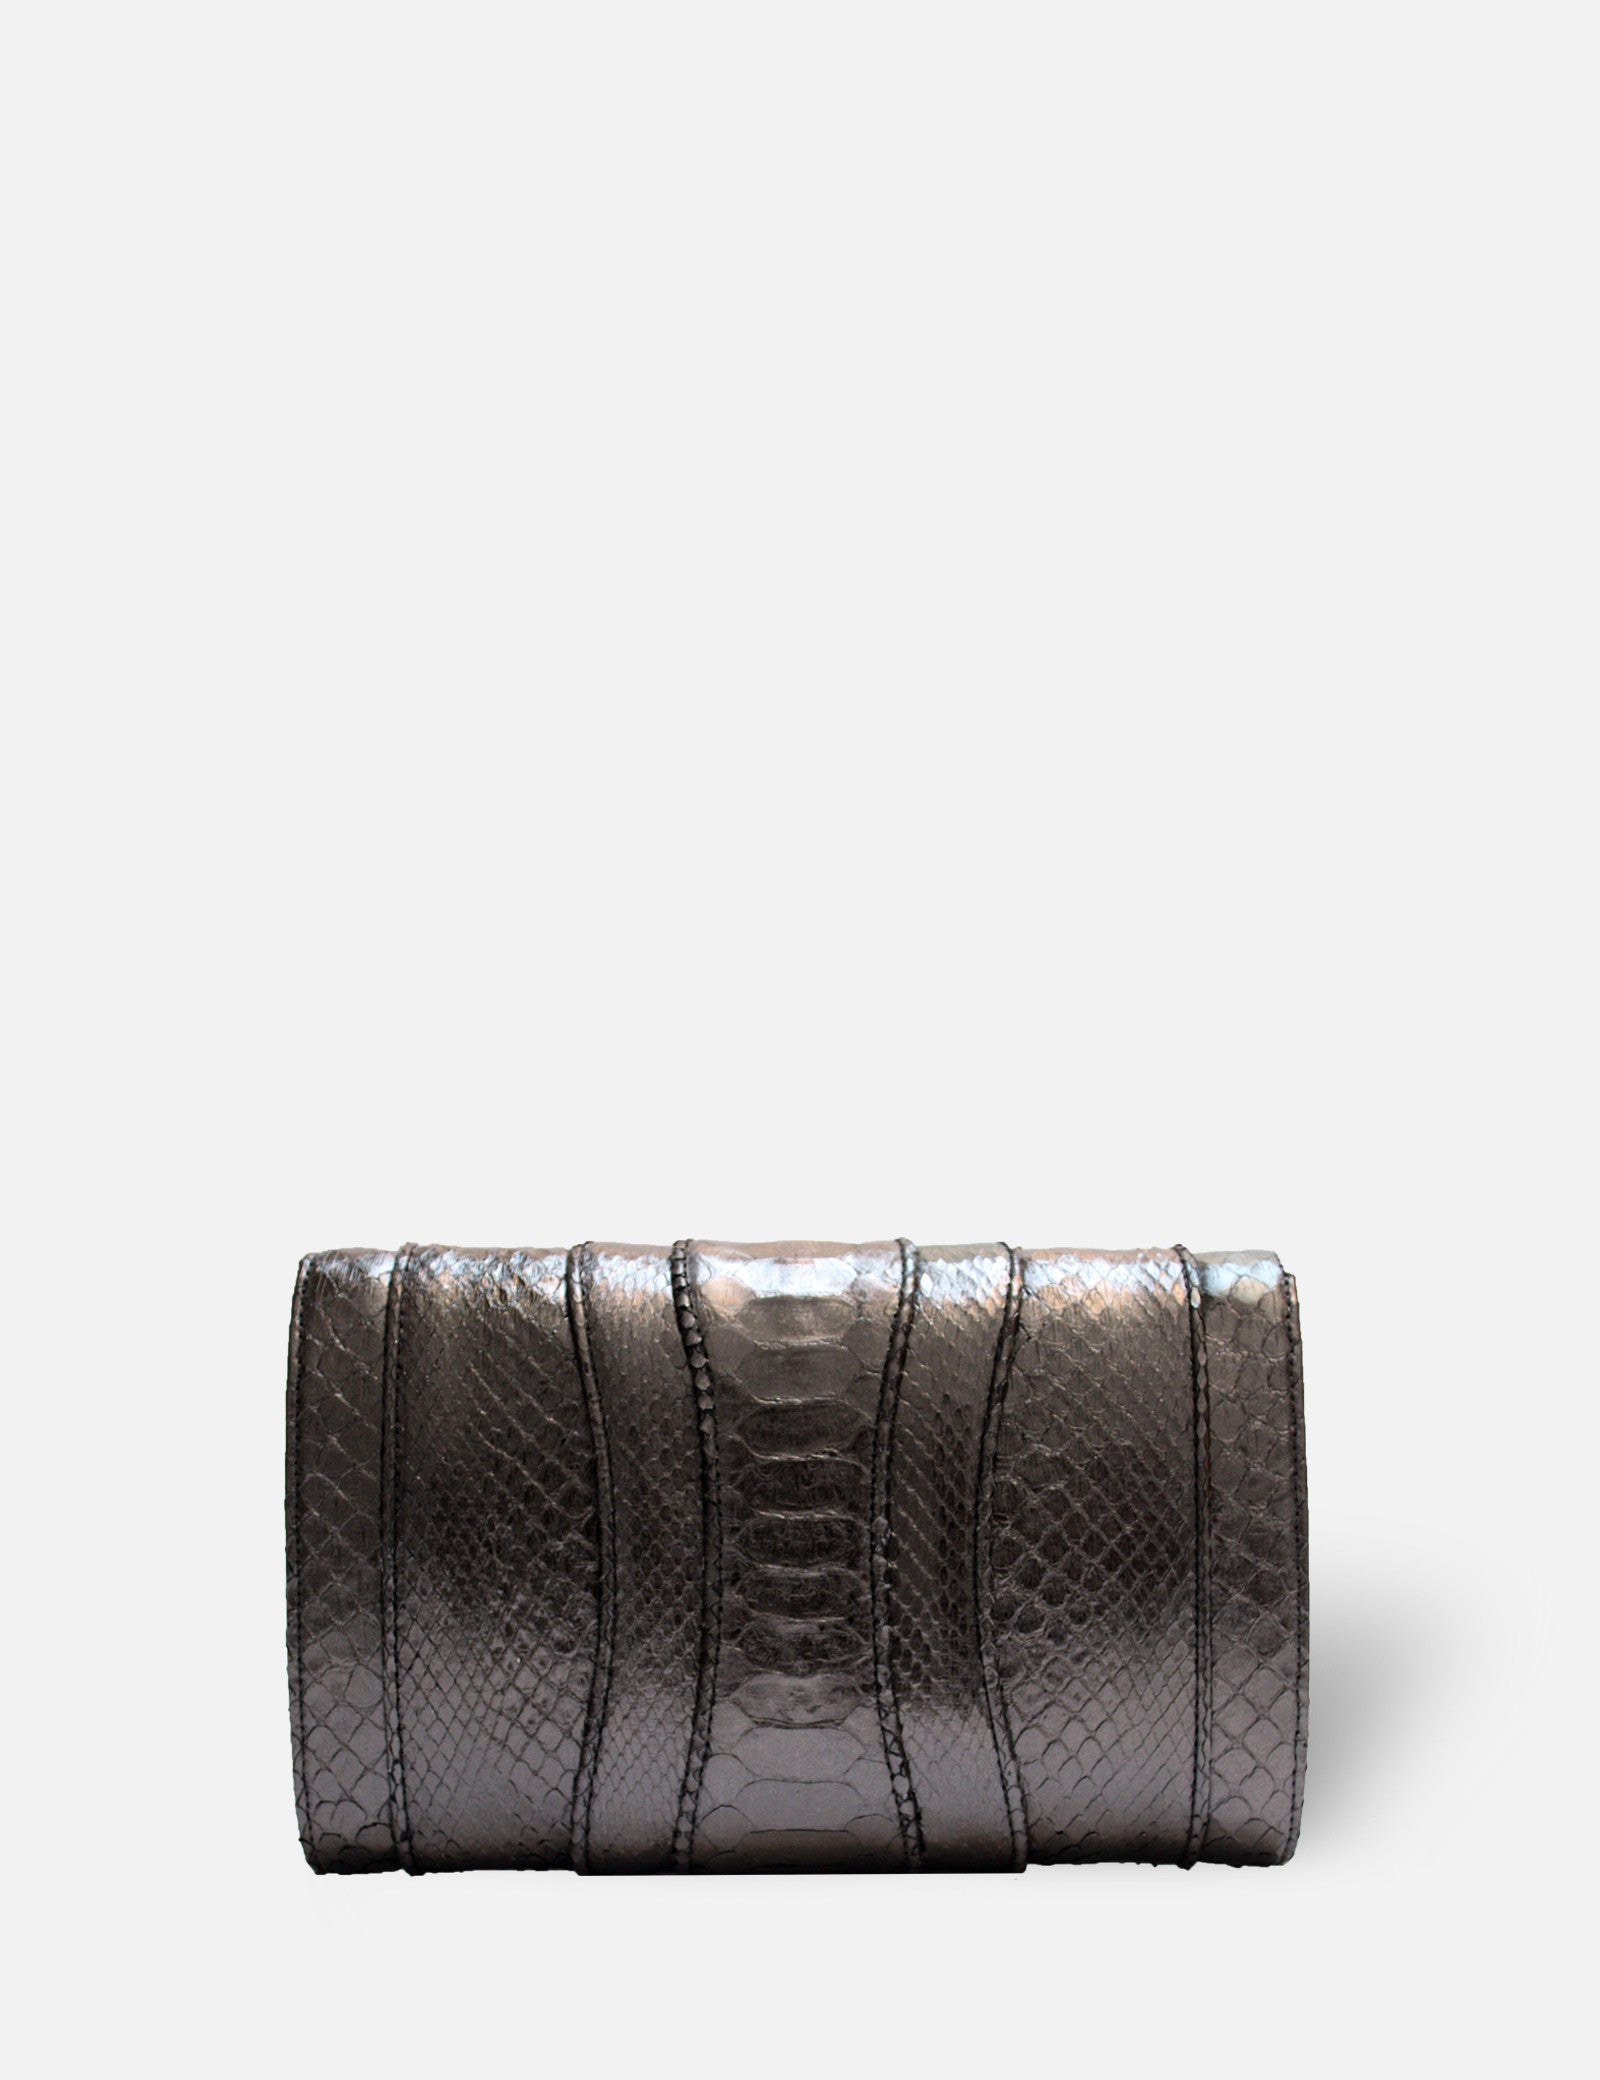 Khirma New York Unique Luxury Designer Exotic Watersnake Python Stingray Crocodile Skin Envelope Clutch Purse in Metallic Gunmetal. Perfect for the day or night. Removable chain for the perfect evening clutch.